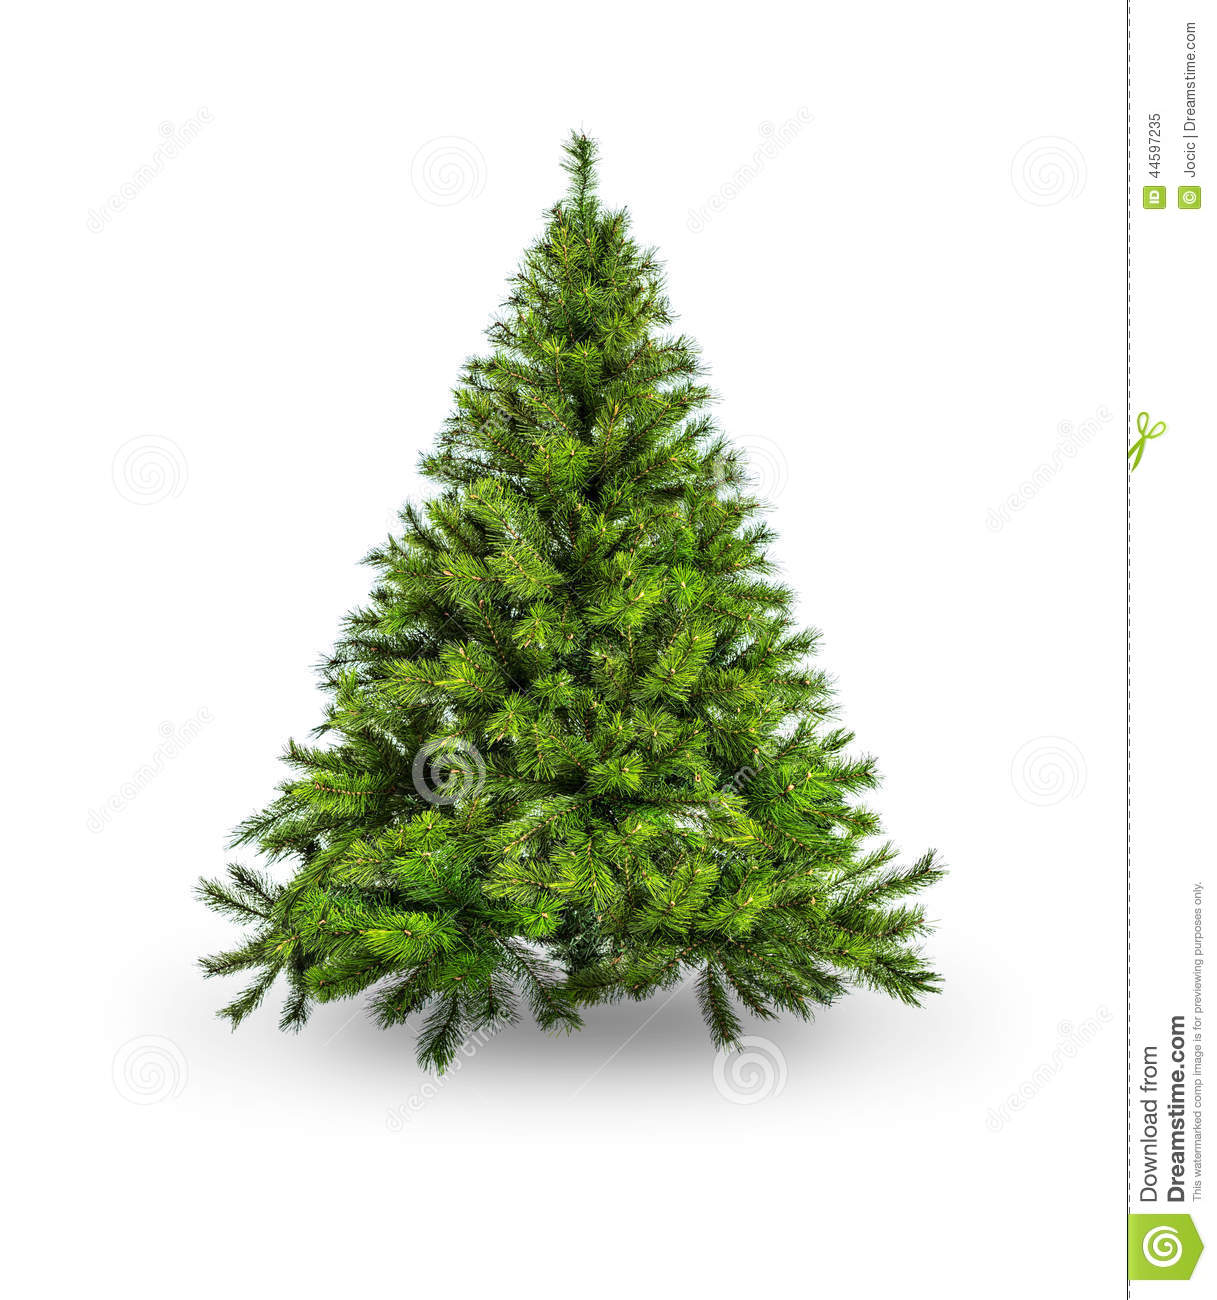 2,1m Xmas Tree for sale with all the decorations